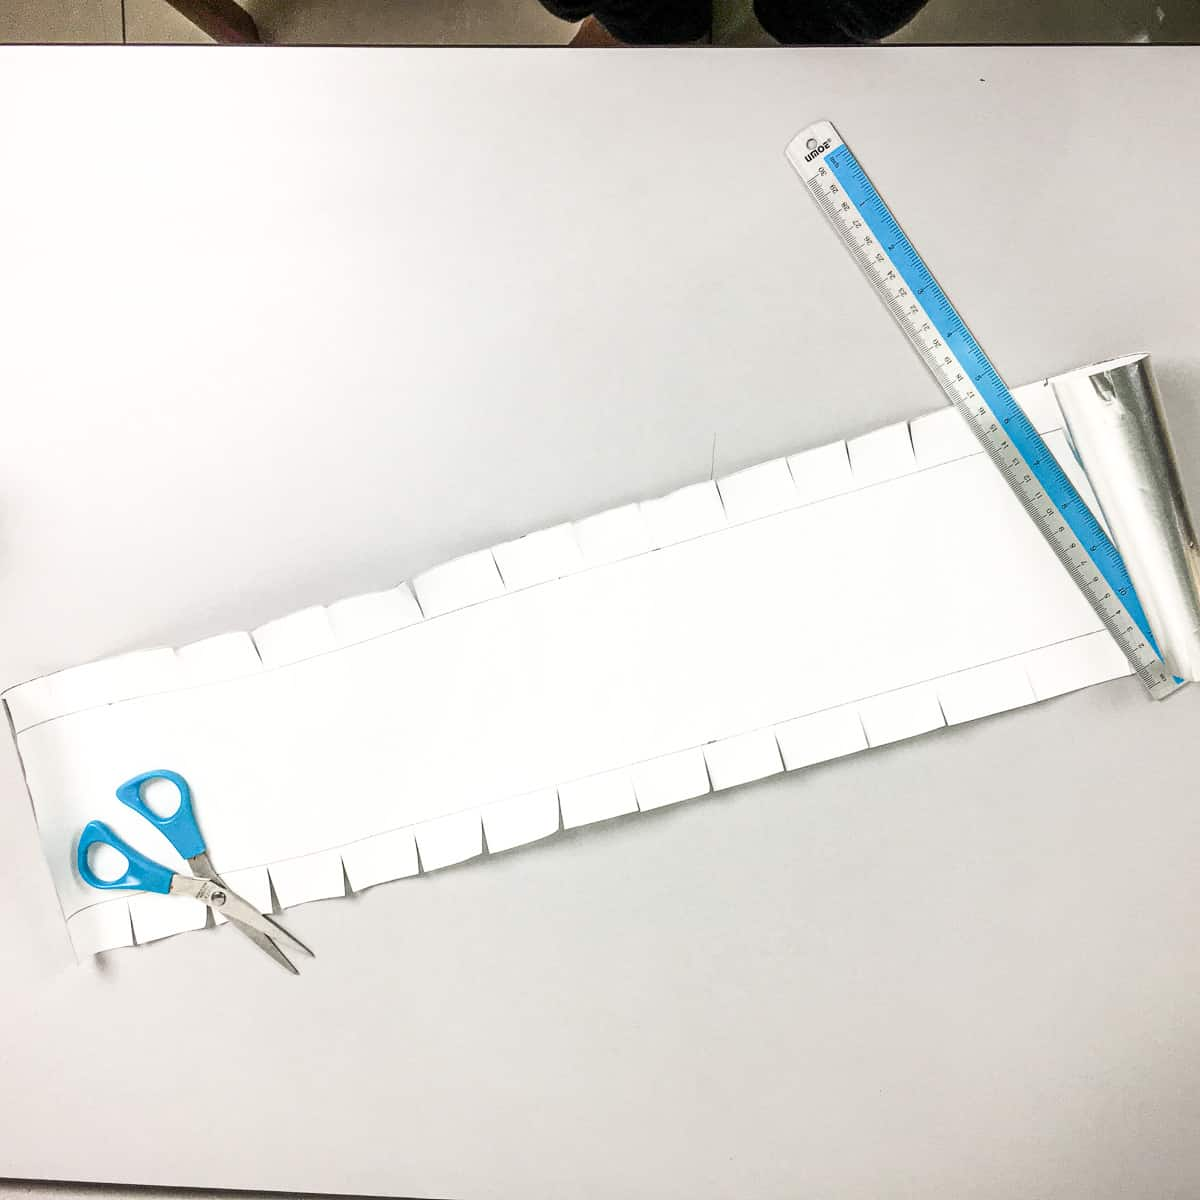 A long piece of paper with the sides snipped being held down with a pair of scissors and ruler